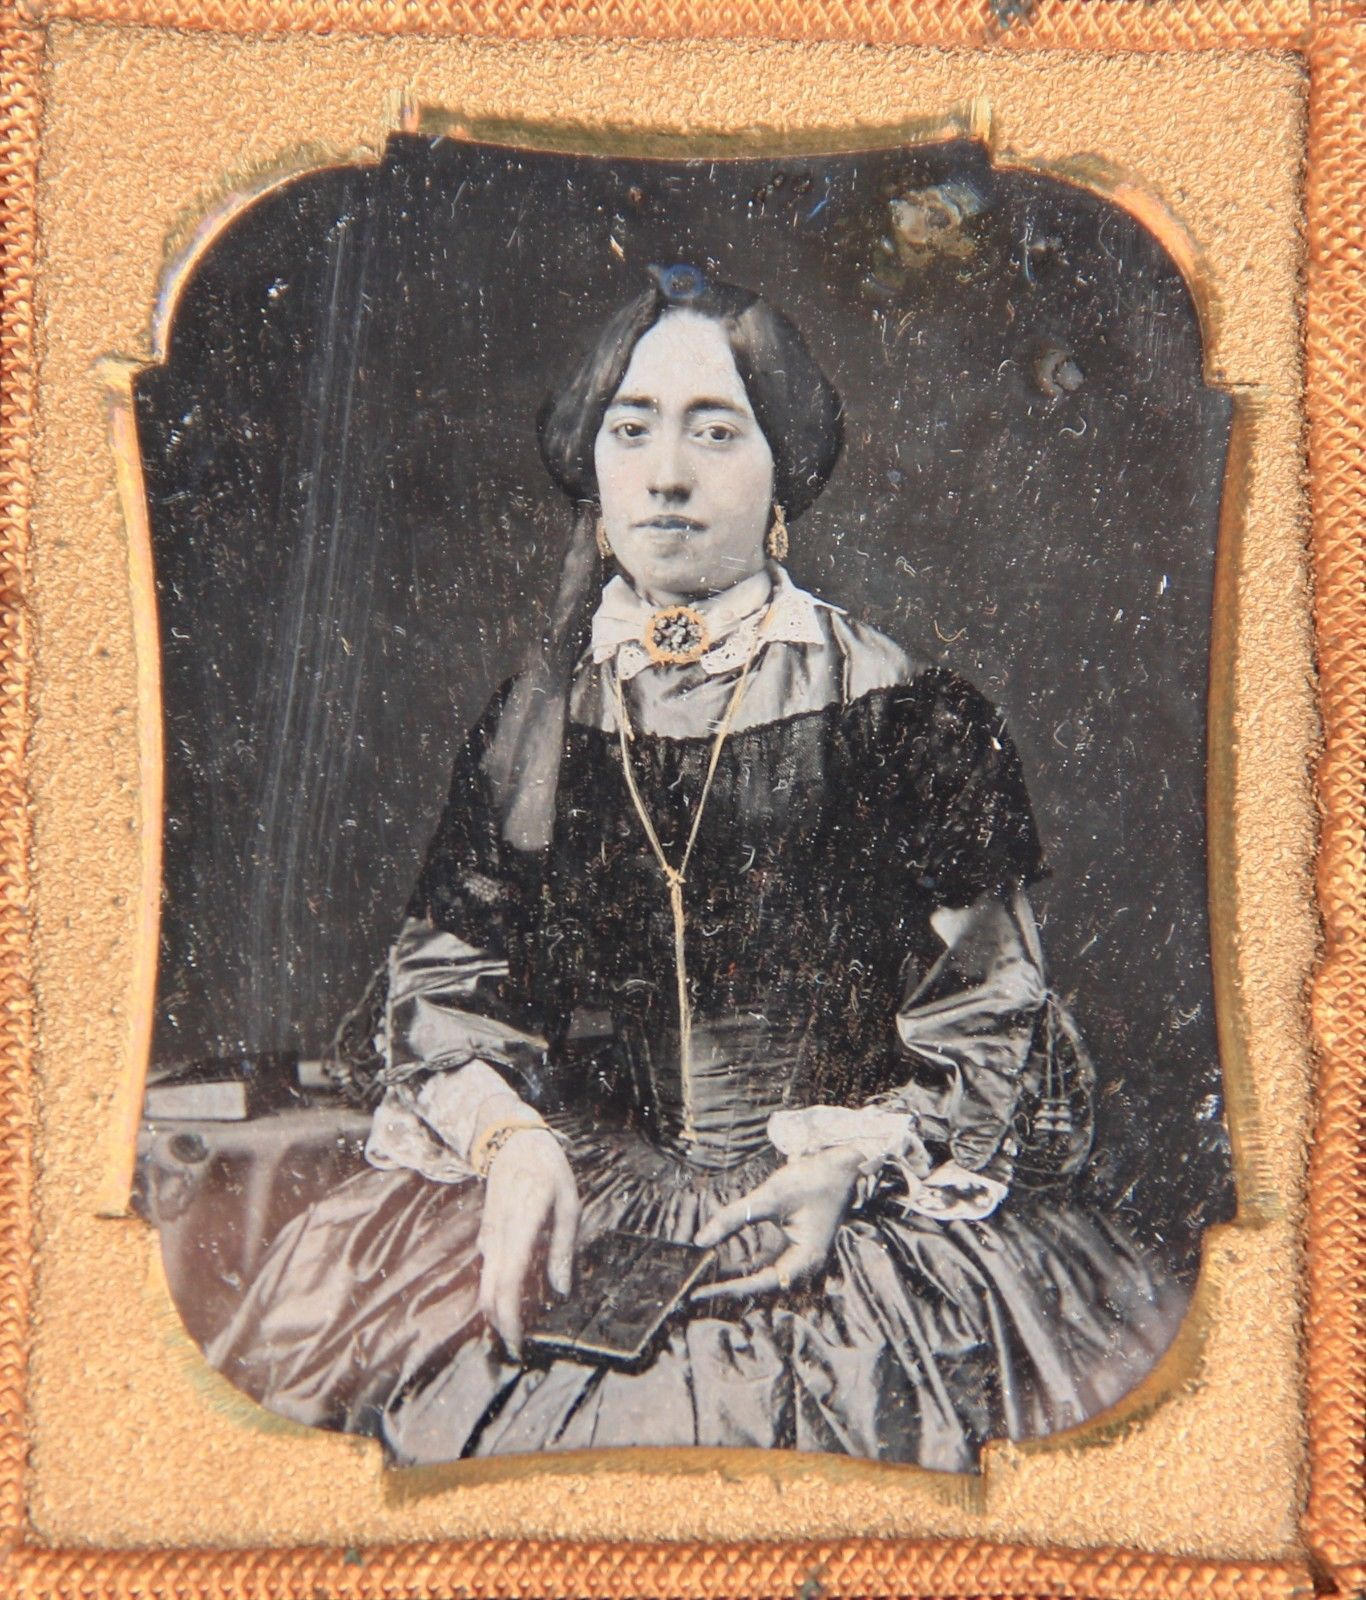 1850s Ambrotype Daguerreotype of Same Woman in Thermoplastic Gutta Percha Case | eBay